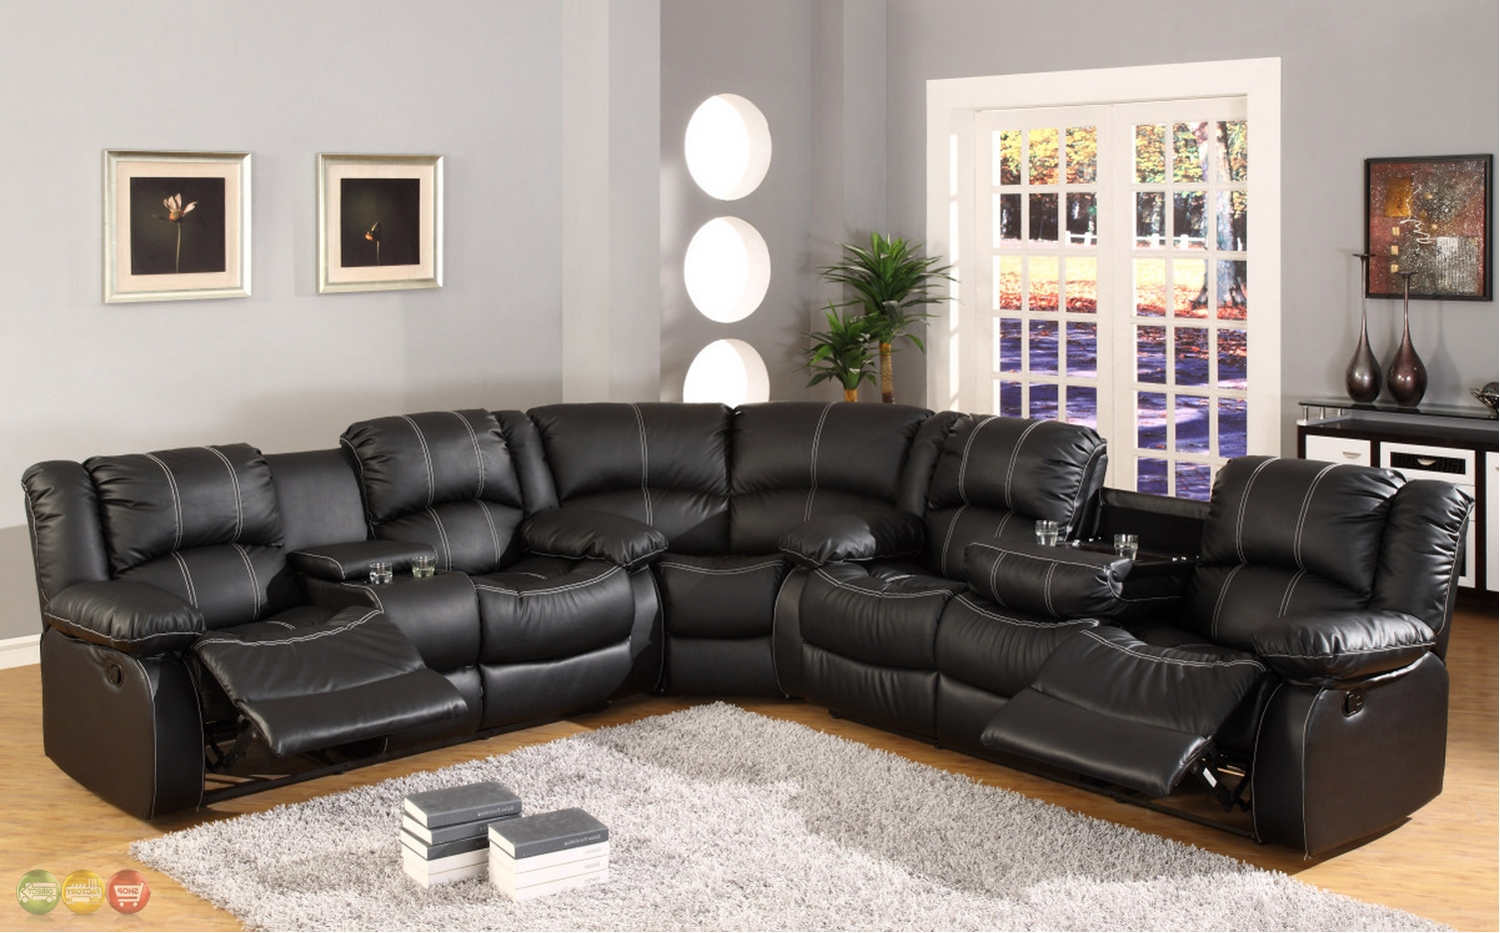 Leather Sofas With Storage Pertaining To Well Known Black Faux Leather Reclining Motion Sectional Sofa W/ Storage (View 4 of 15)